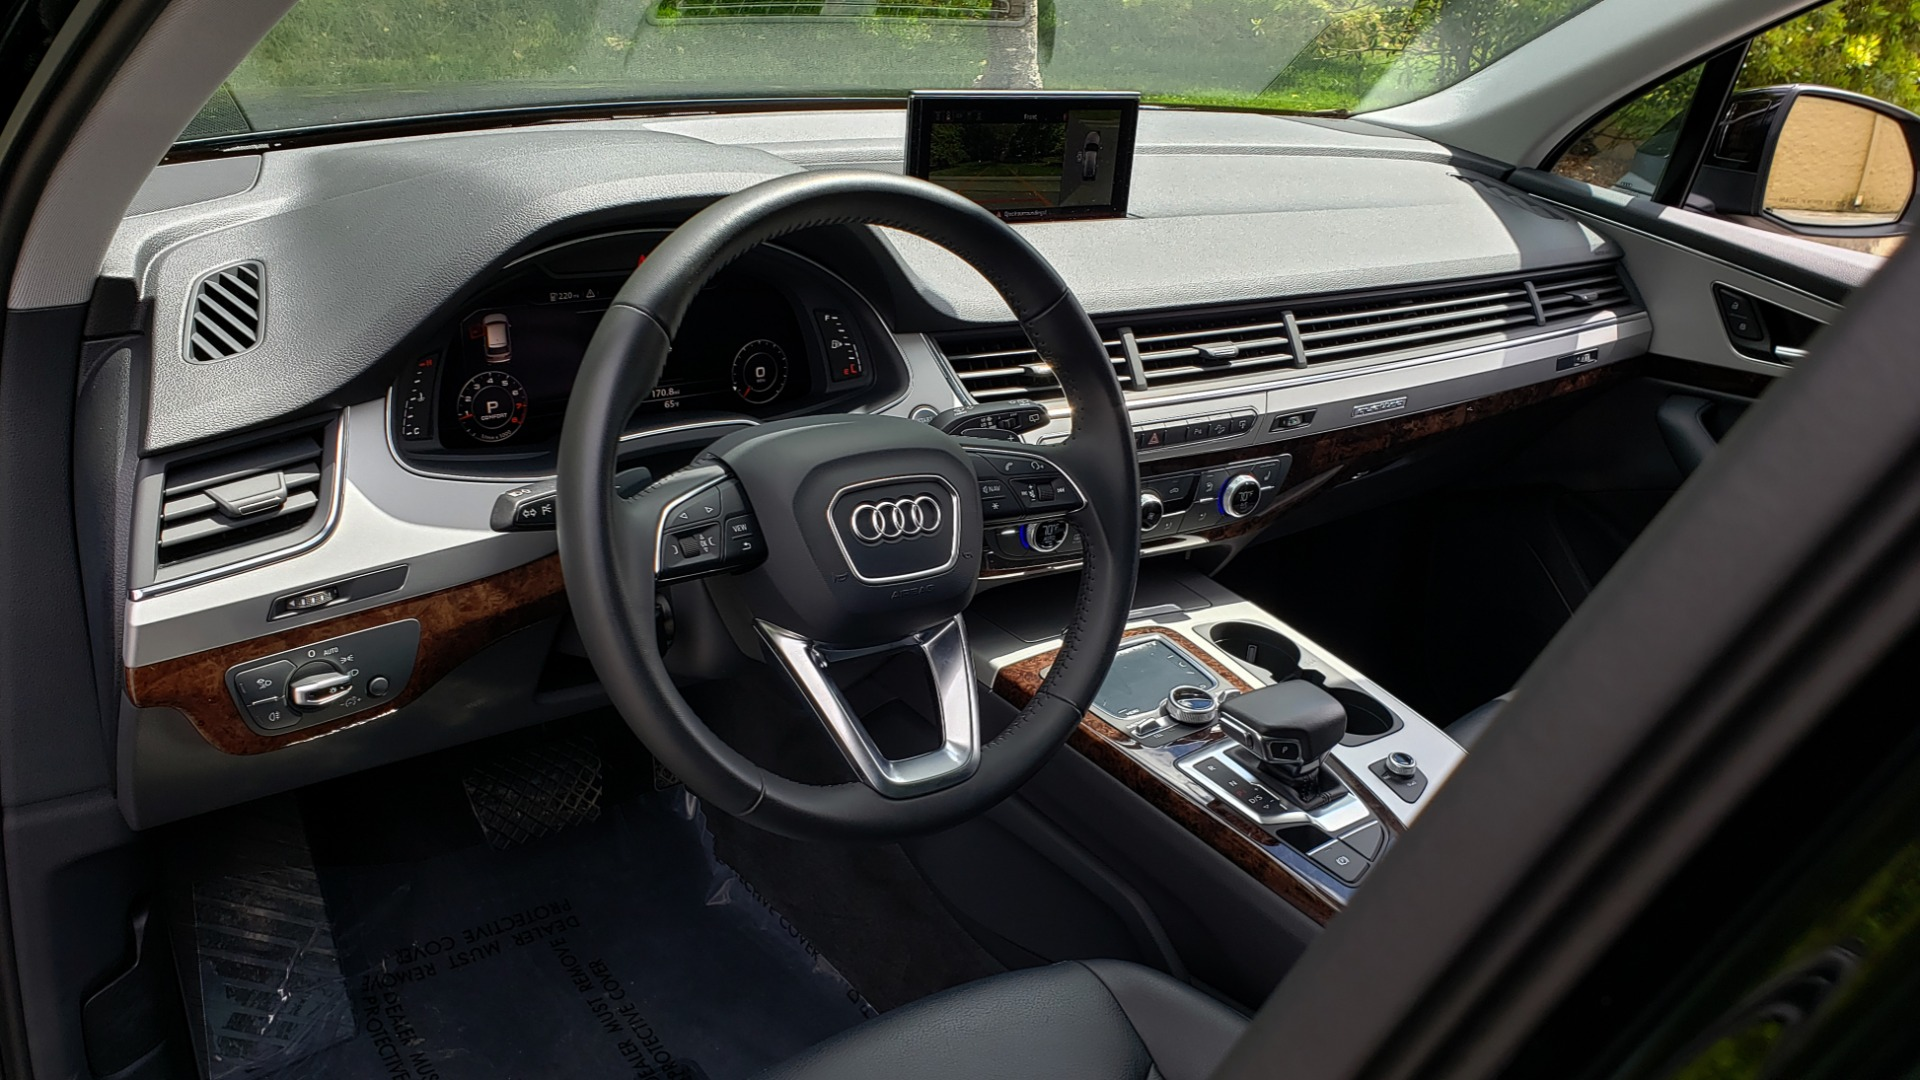 Used 2017 Audi Q7 PREMIUM PLUS / VISION PKG / NAV / PANO-ROOF / 3-ROW / REARVIEW for sale Sold at Formula Imports in Charlotte NC 28227 36